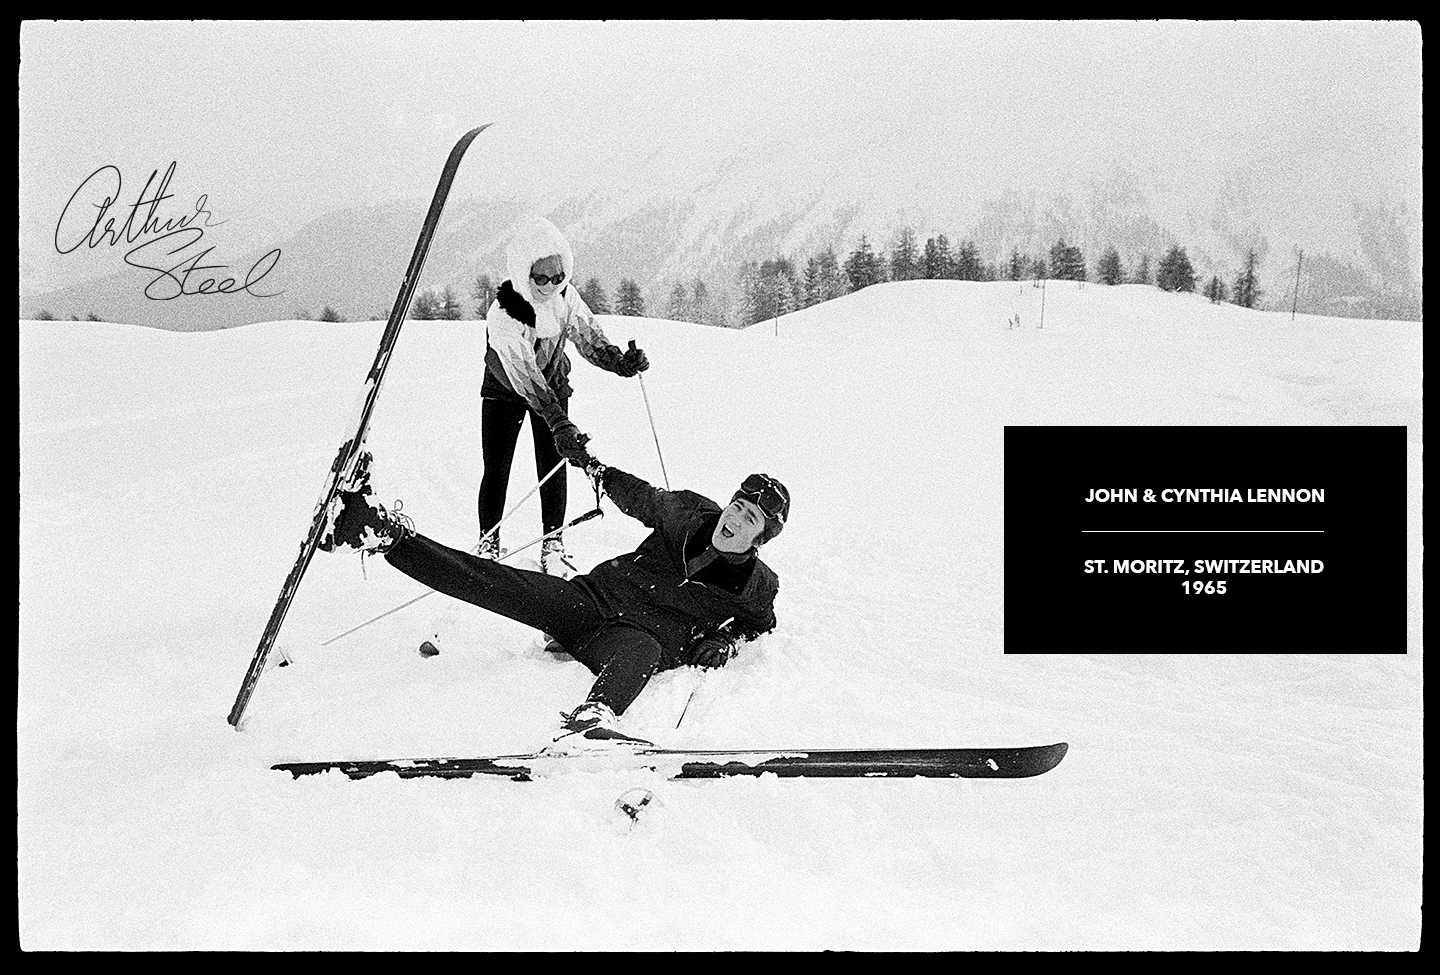 john-and-cyntia-lennon-skiing-photograph-by-arthur-steel